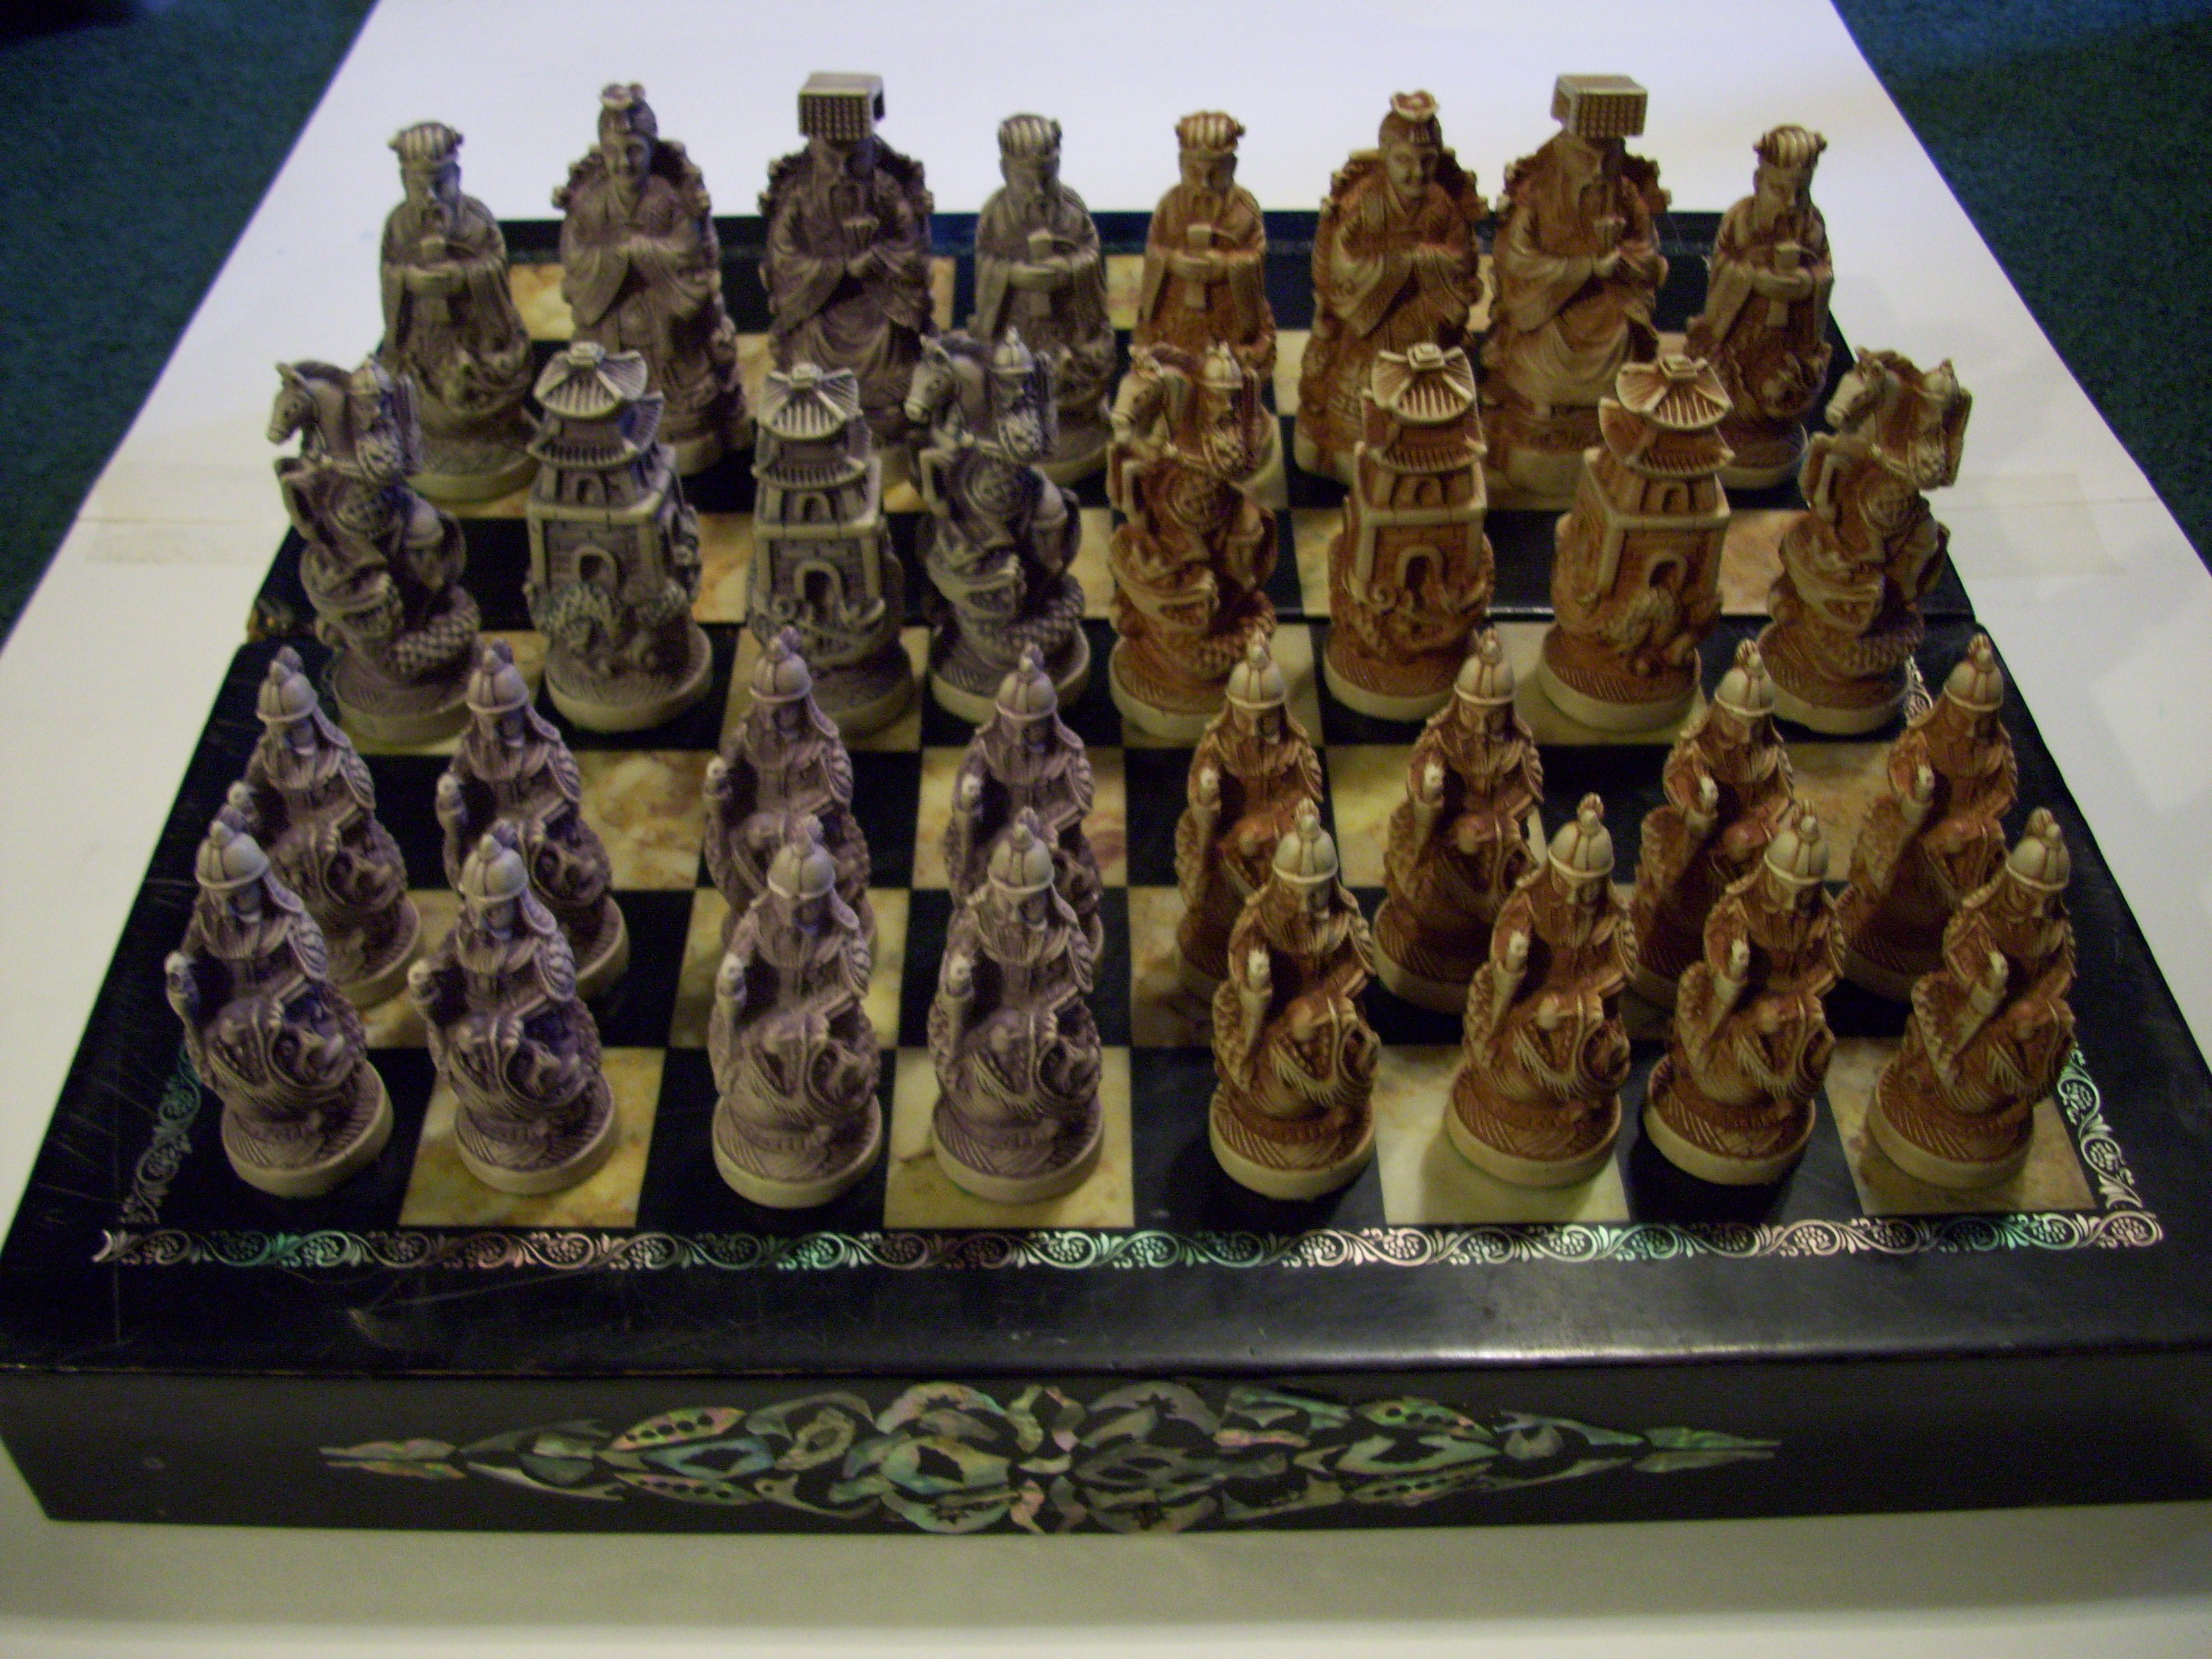 Antique chess game found?